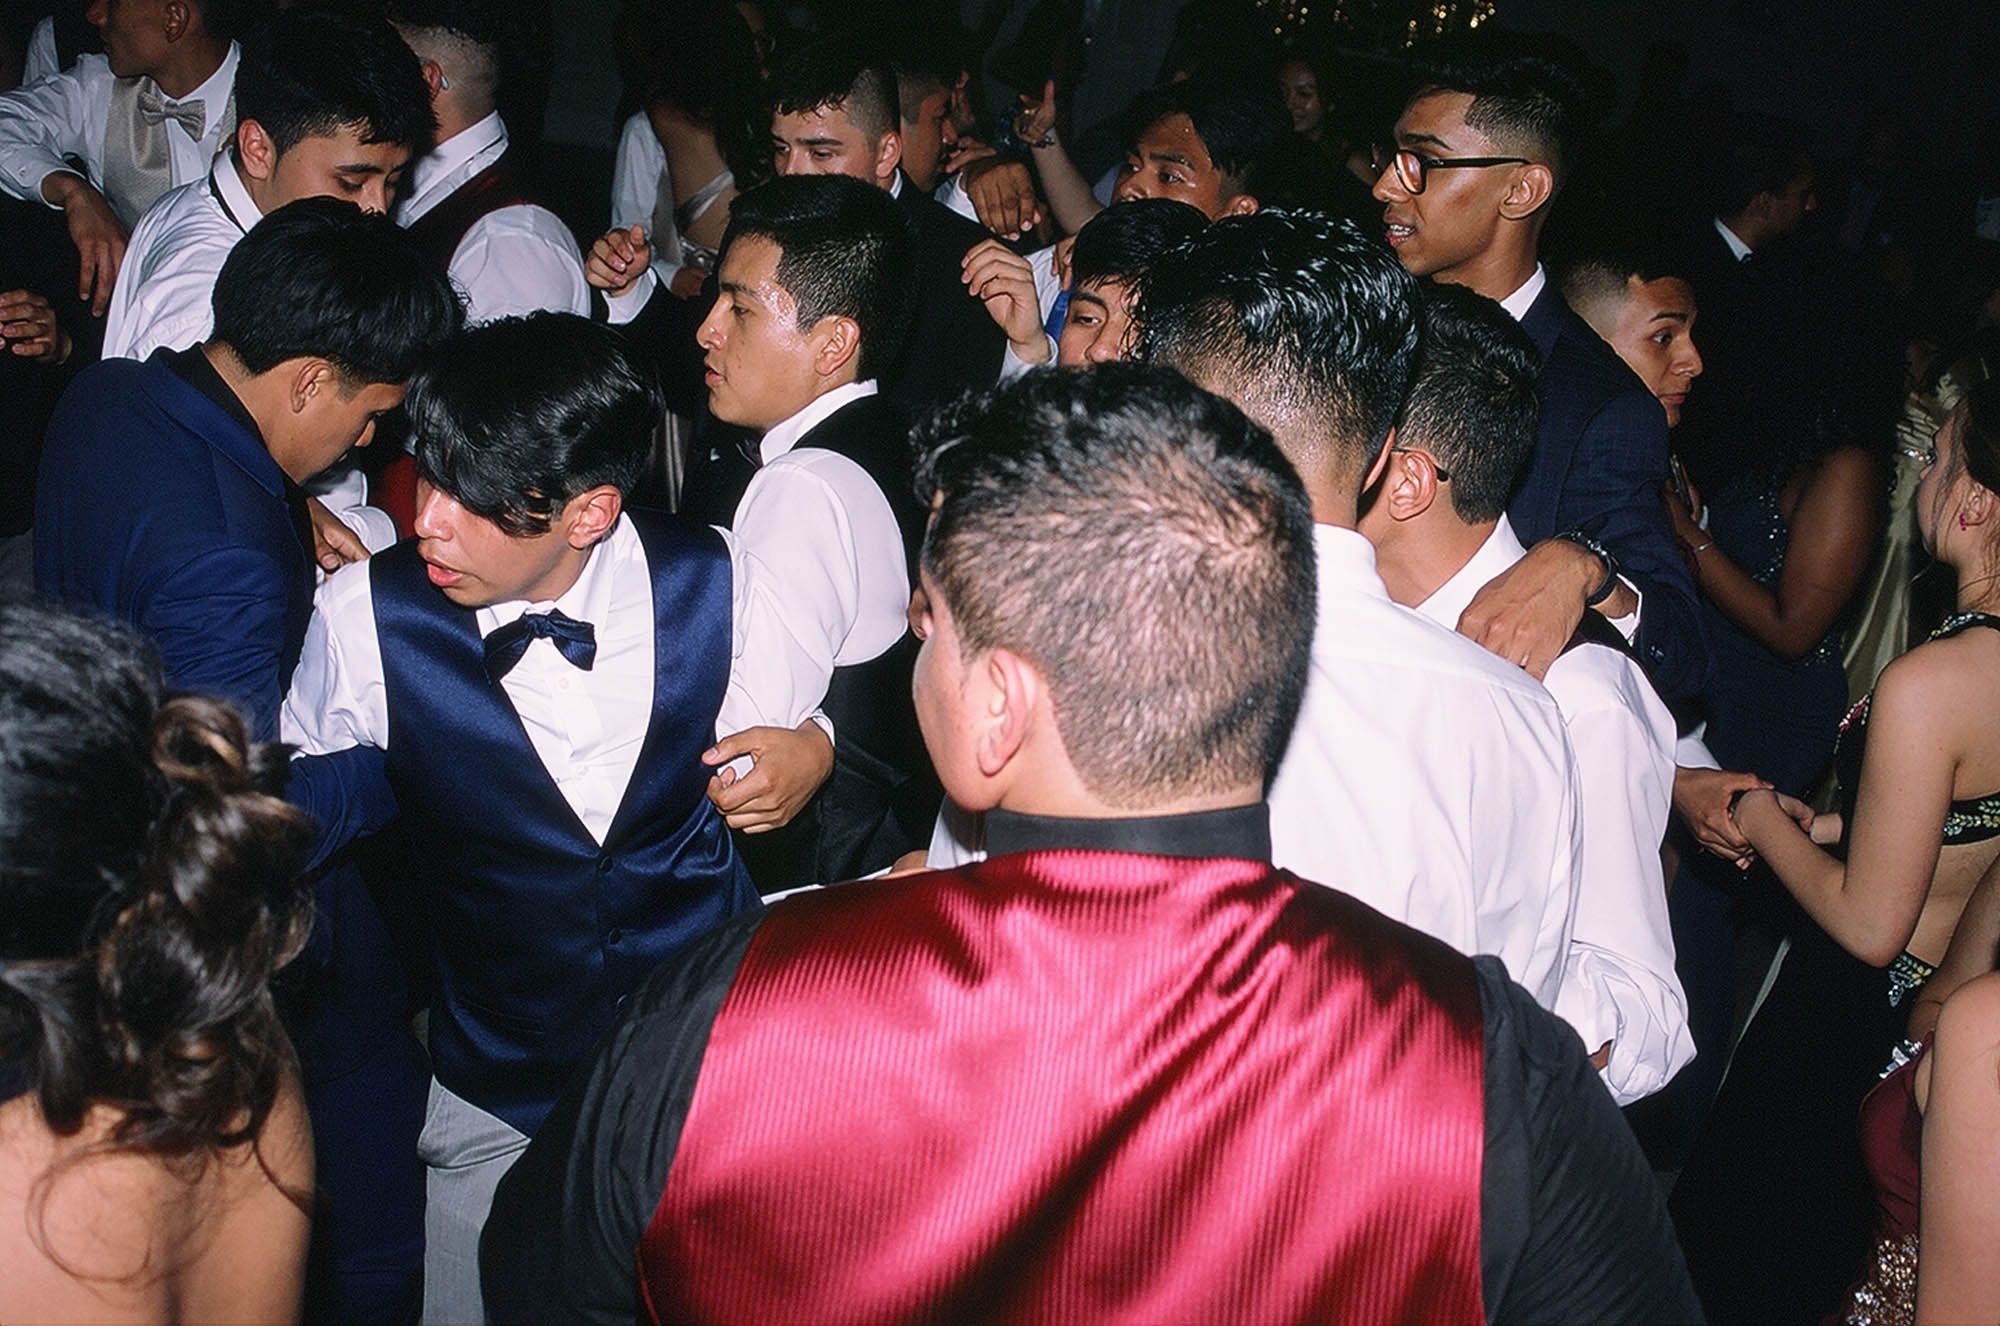 Prom pictures while people dancing. Date: May 31, 2019 Shot on Fujifilm Fujichrome Provia 100F